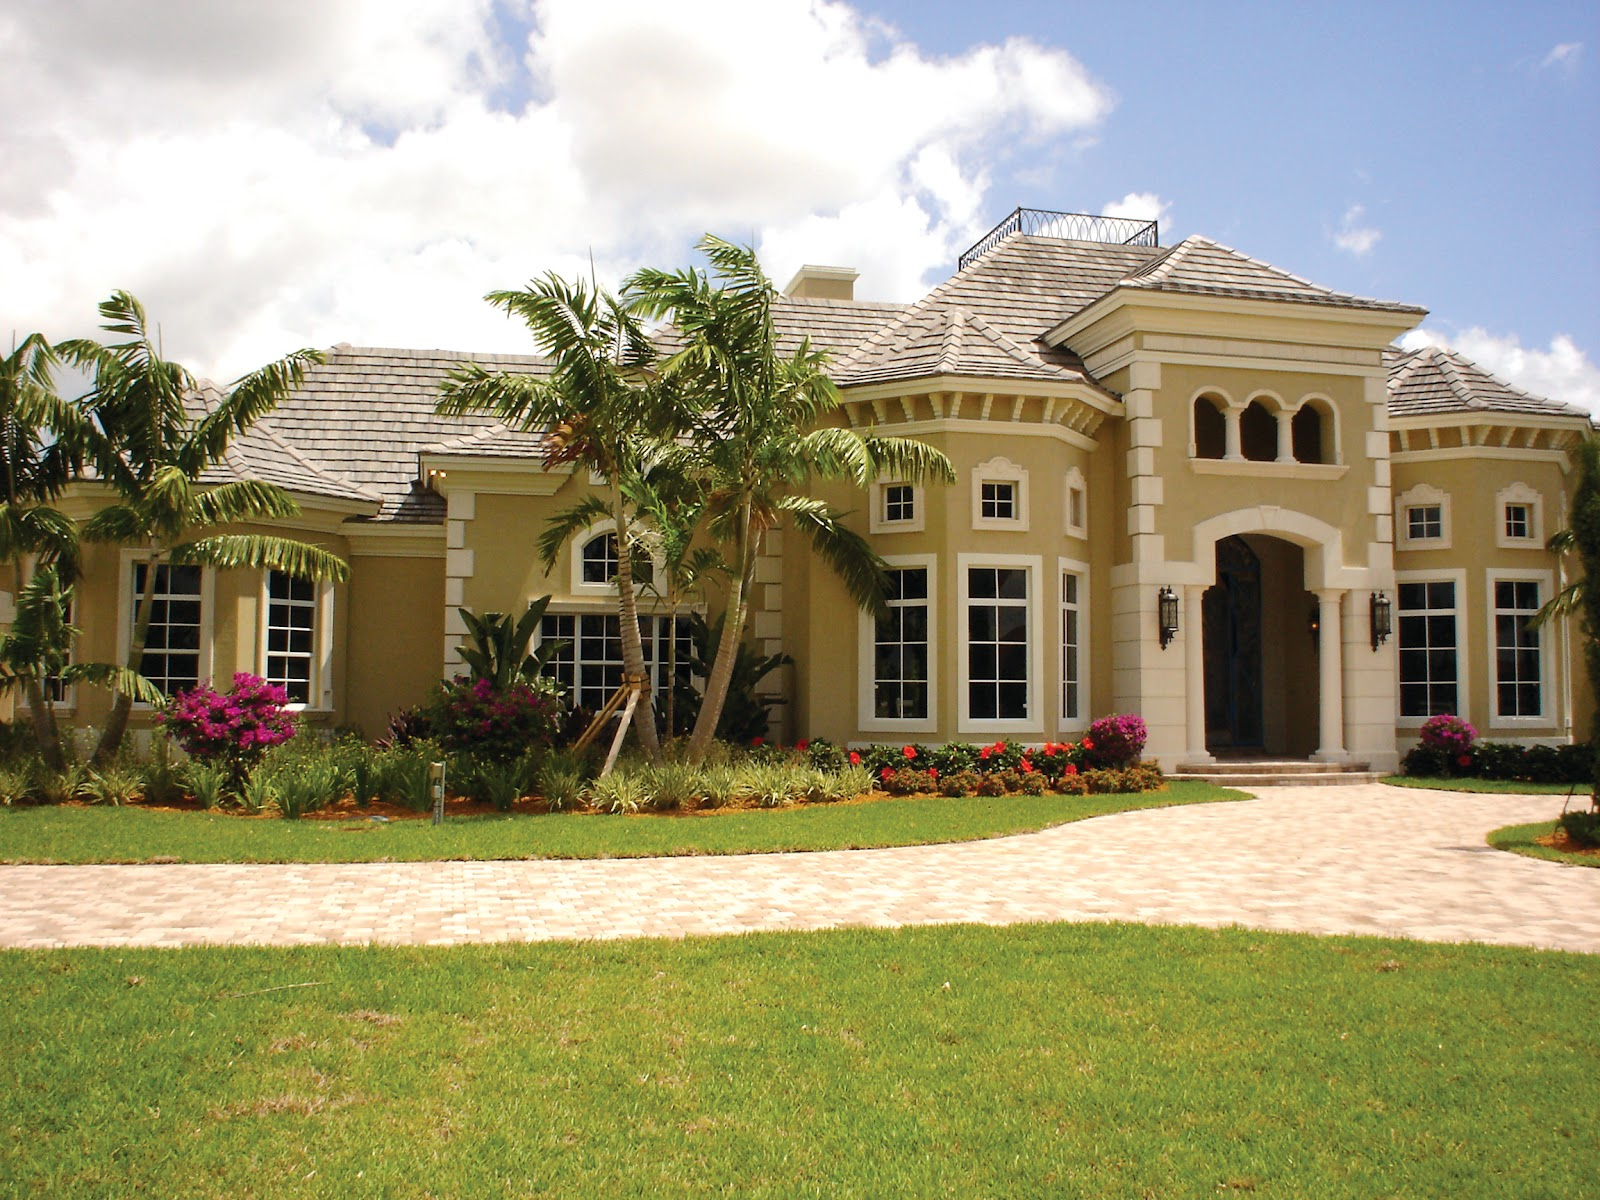 Florida Custom Home Plans The Best Place For Home Design Ideas